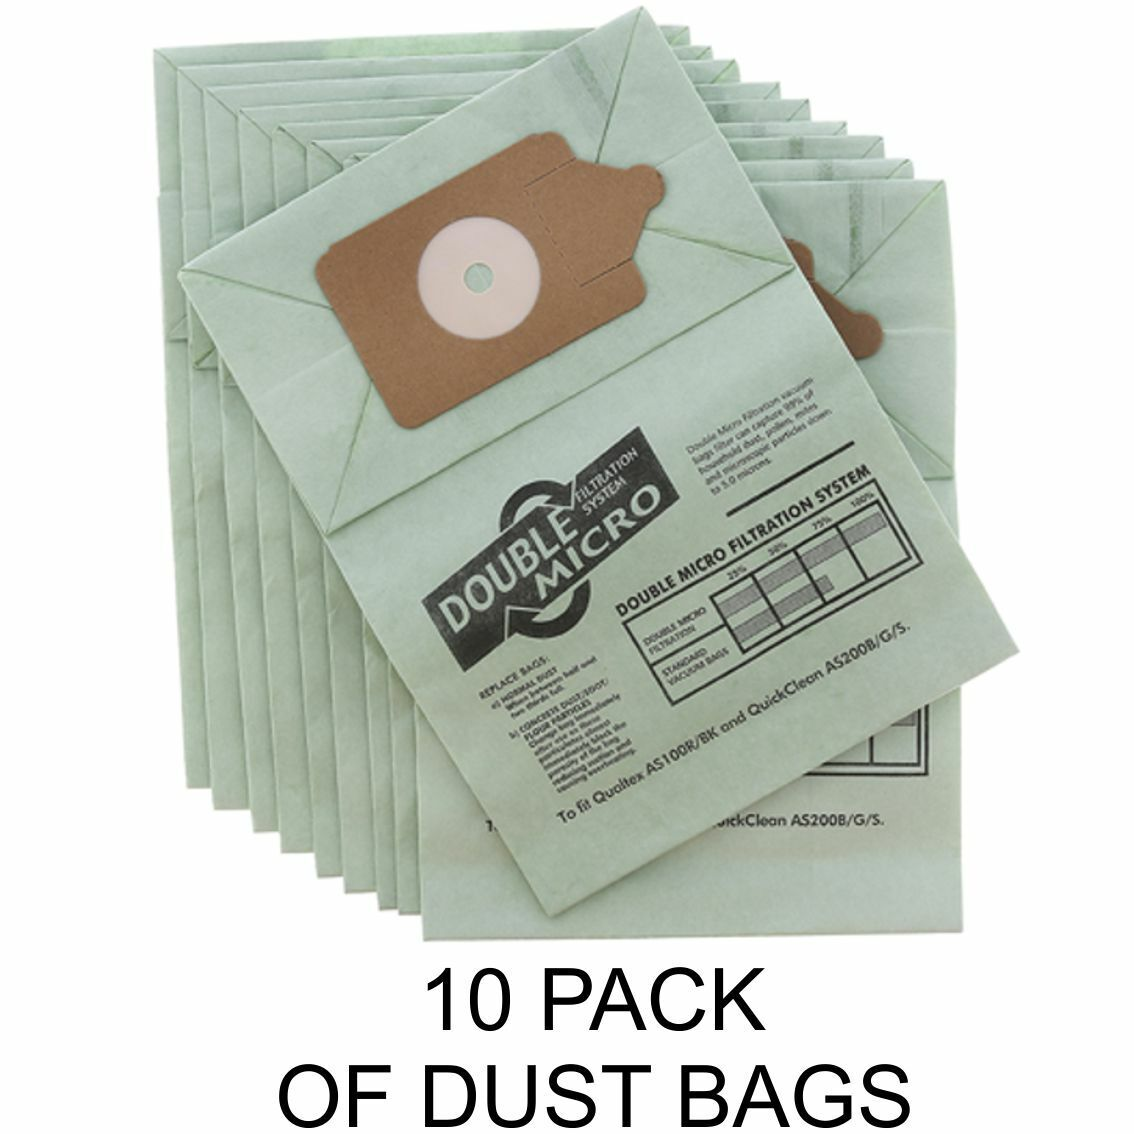 10 x NUMATIC PSP-200A hoover Vacuum Cleaner Double Layer Filtration Dust Bags